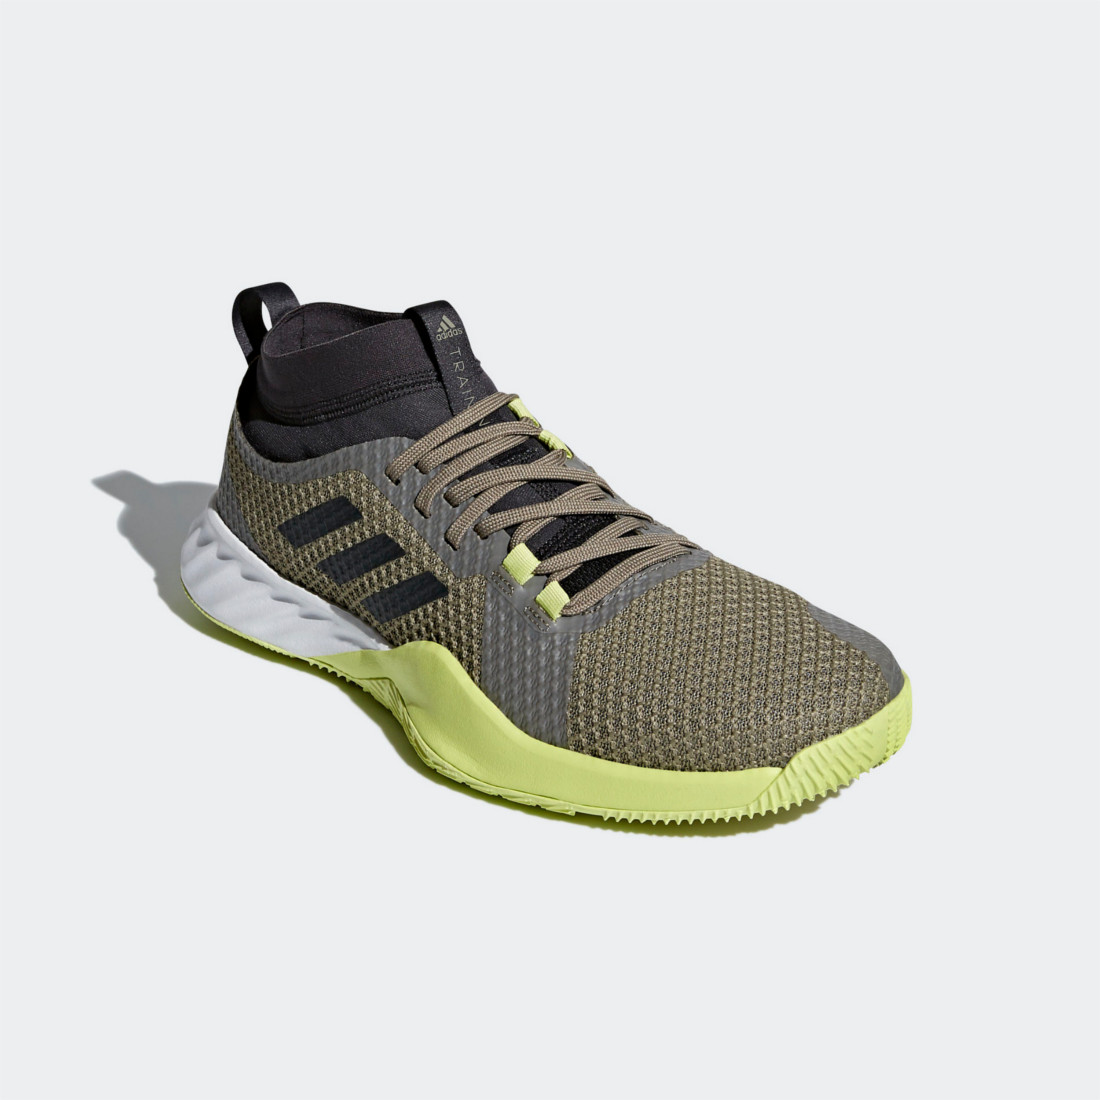 new products 4fb22 b21a4 ADIDAS CRAZYTRAIN PRO 3 BOUNCE GREEN CARBON 42 23